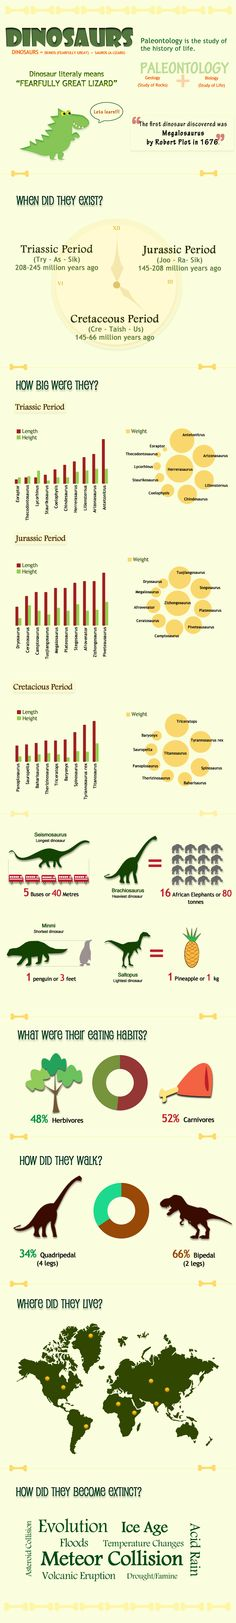 Just a simple infographic for kiddies to learn about dinosaurs.Fun, interactive learning tool about dinosaurs A stepping stone towards interest and a future in palaentology.